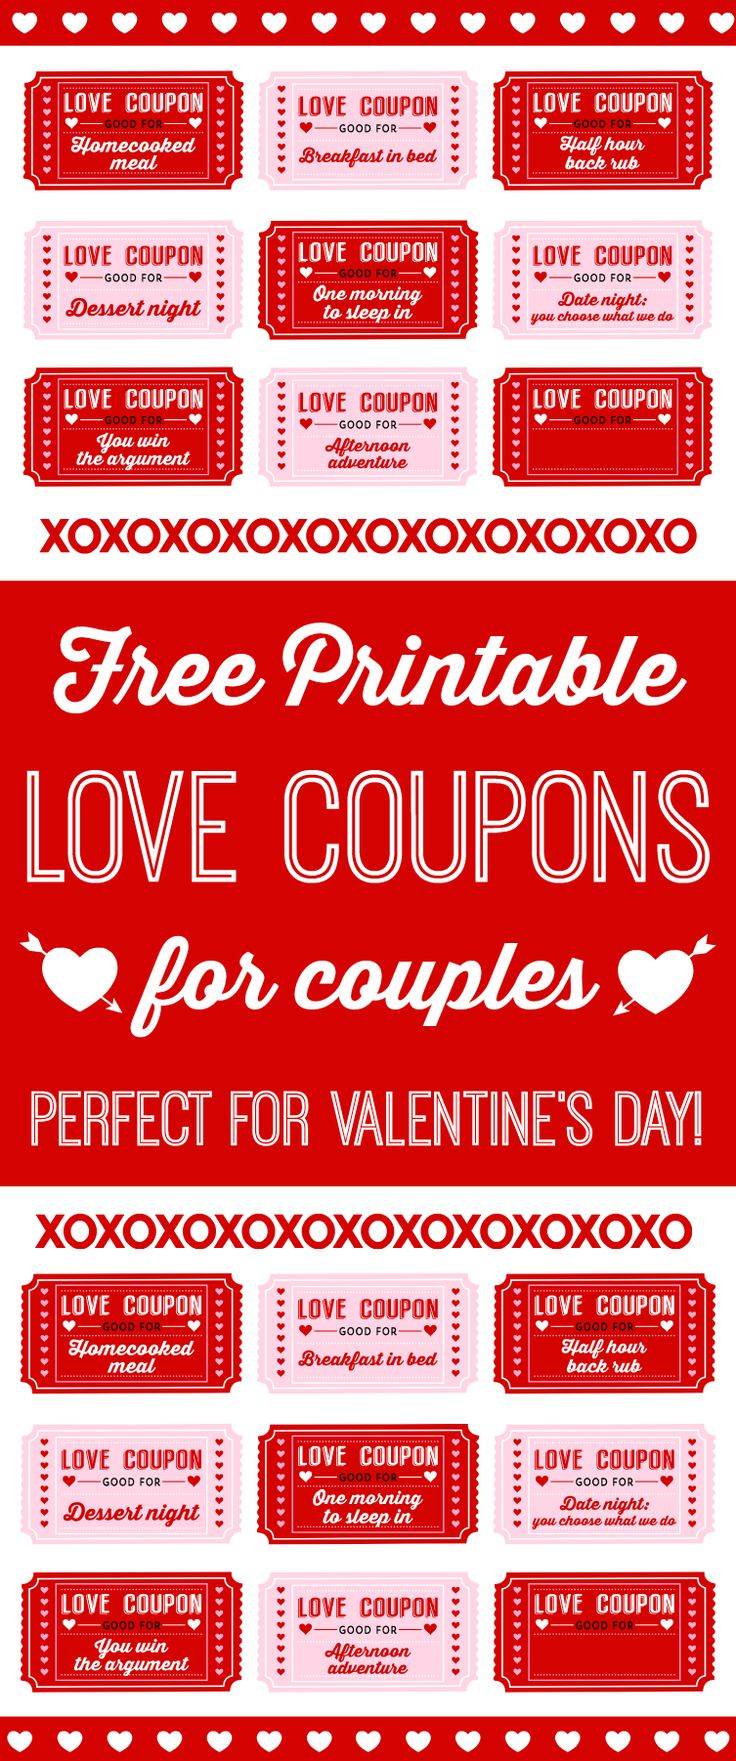 free printable love coupons for 753 1 802. Black Bedroom Furniture Sets. Home Design Ideas